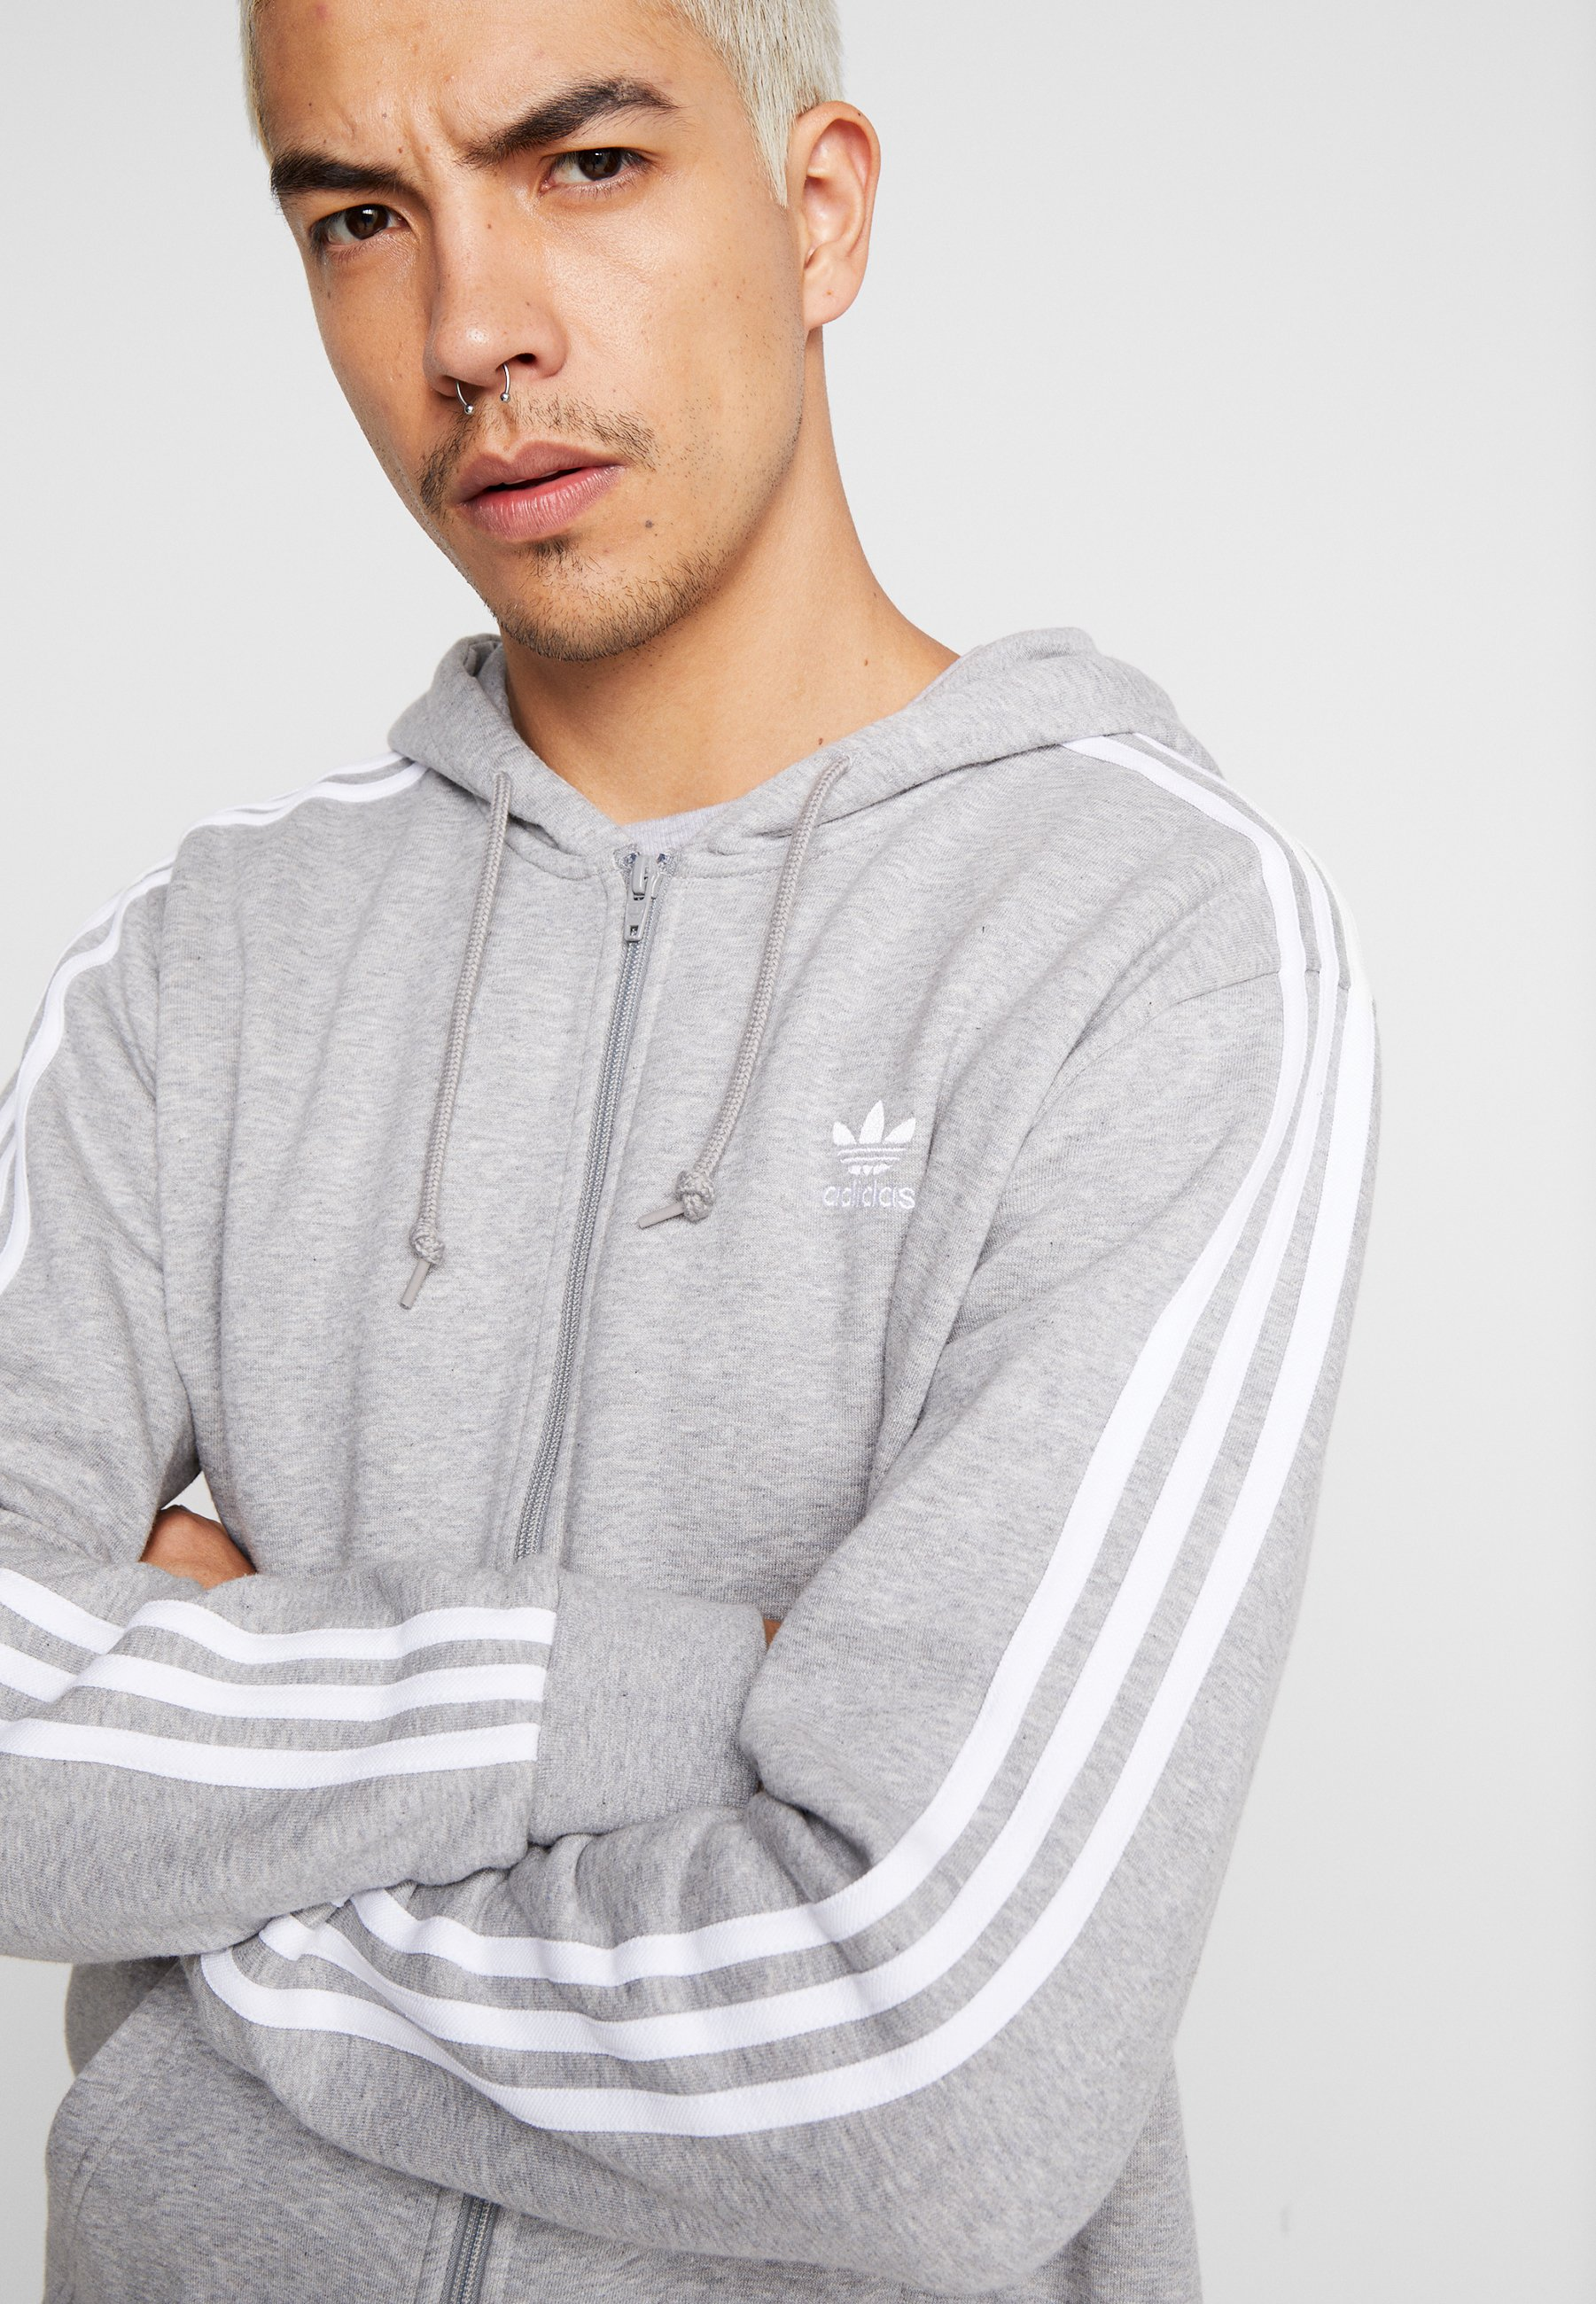 Adidas Originals 3-stripes - Bluza Rozpinana Medium Grey Heather